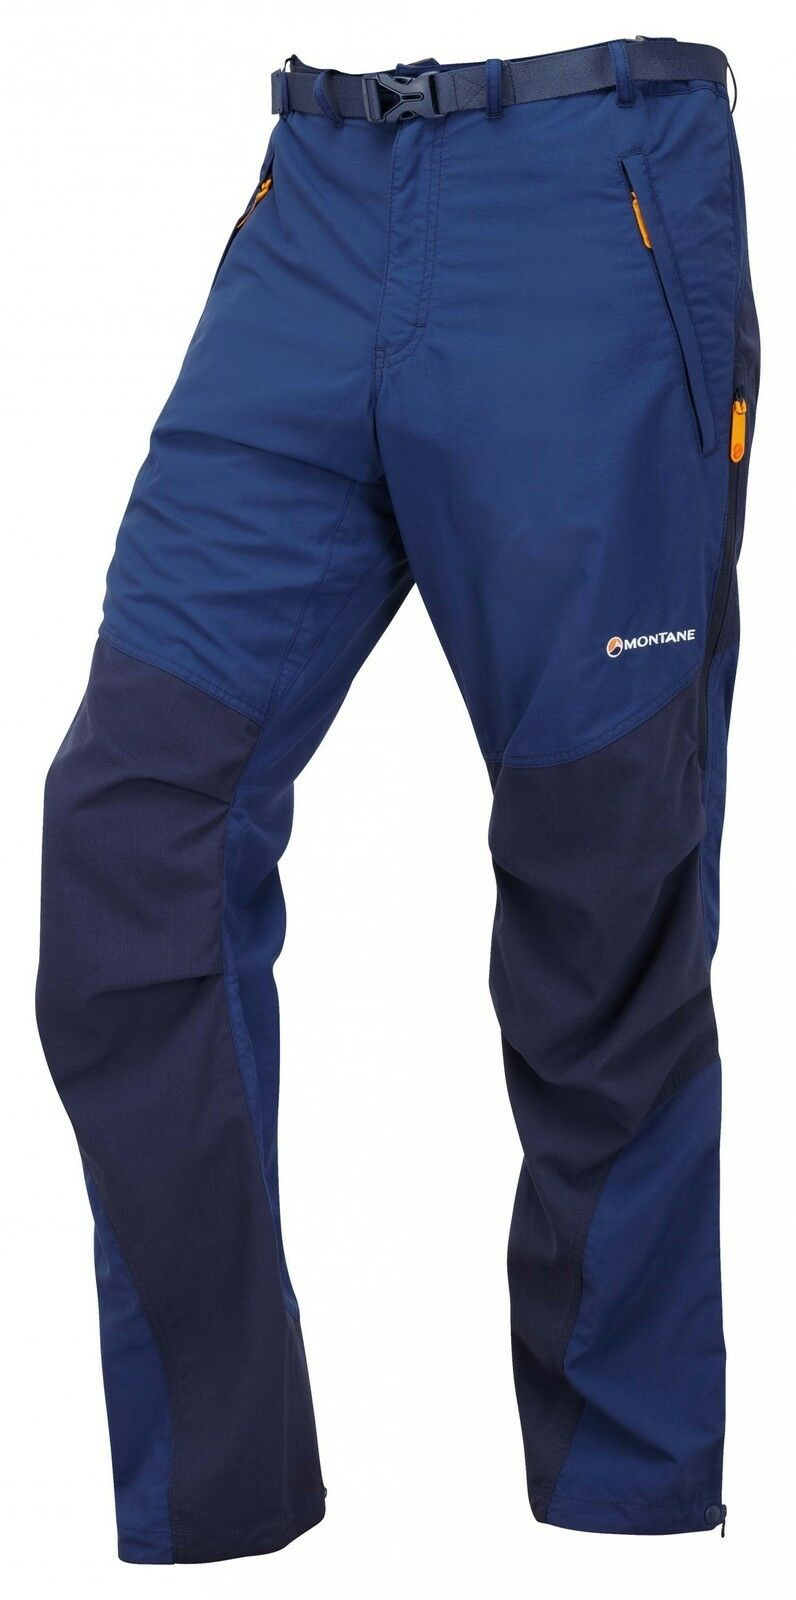 Montane Terra Pants Men,Lightweight Outdoor Trousers with Reinforcements  for Men  new branded